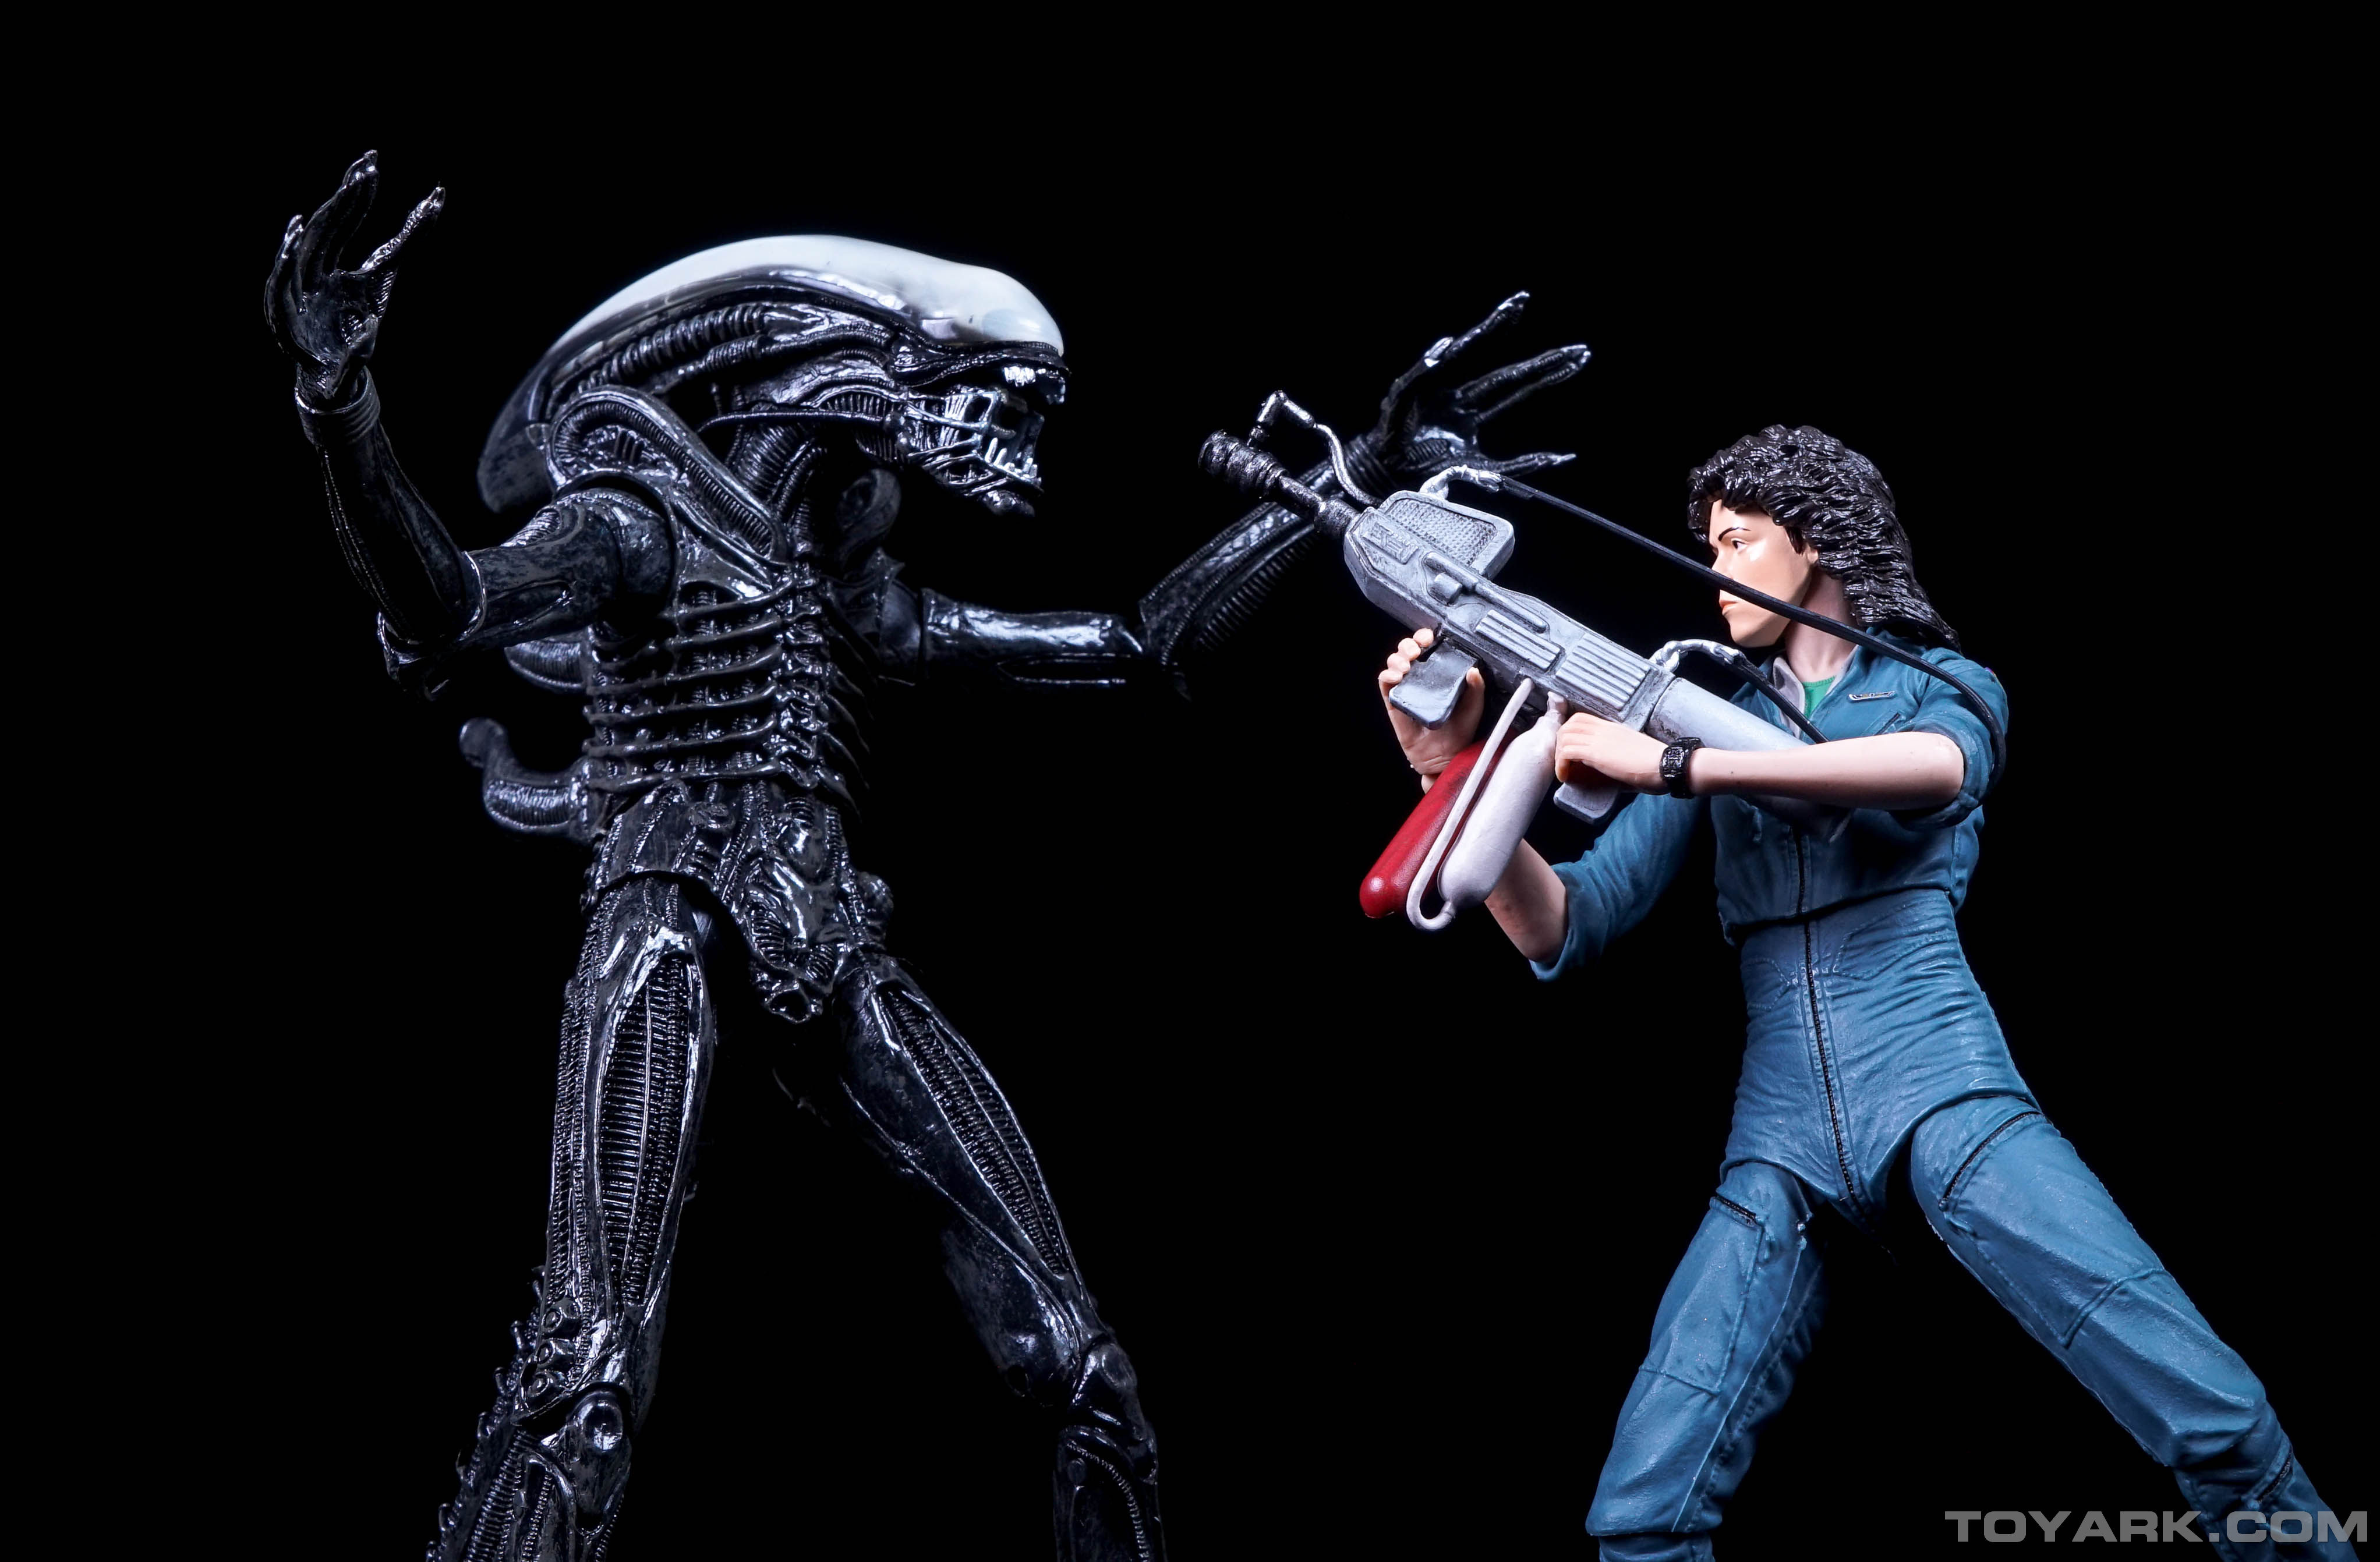 http://news.toyark.com/wp-content/uploads/sites/4/2015/06/Aliens-Series-4-by-NECA-099.jpg